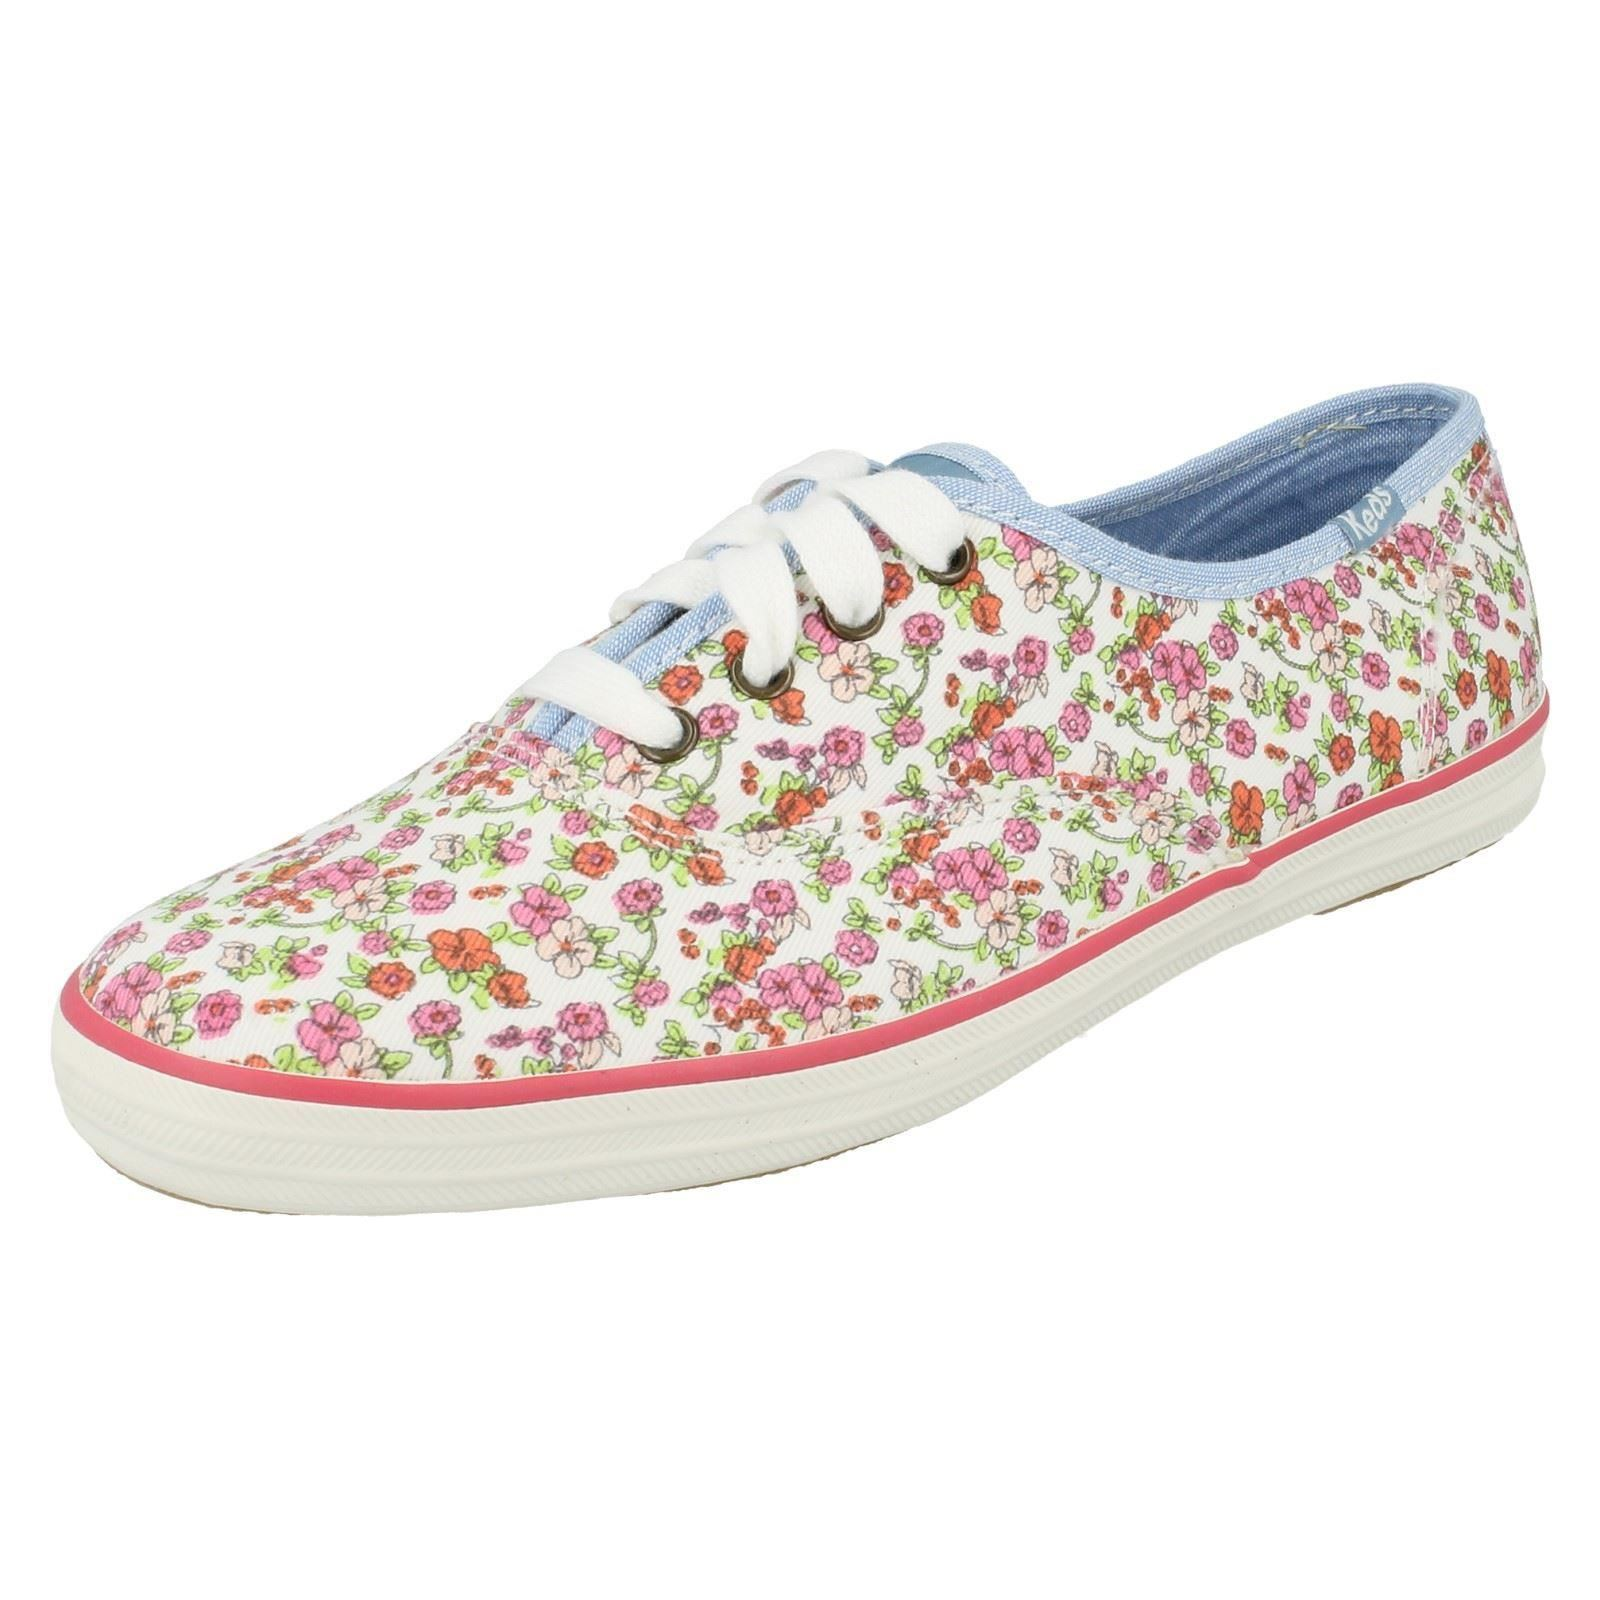 WOMENS CANVAS SHOES 7UK PINK (ORIGINAL)